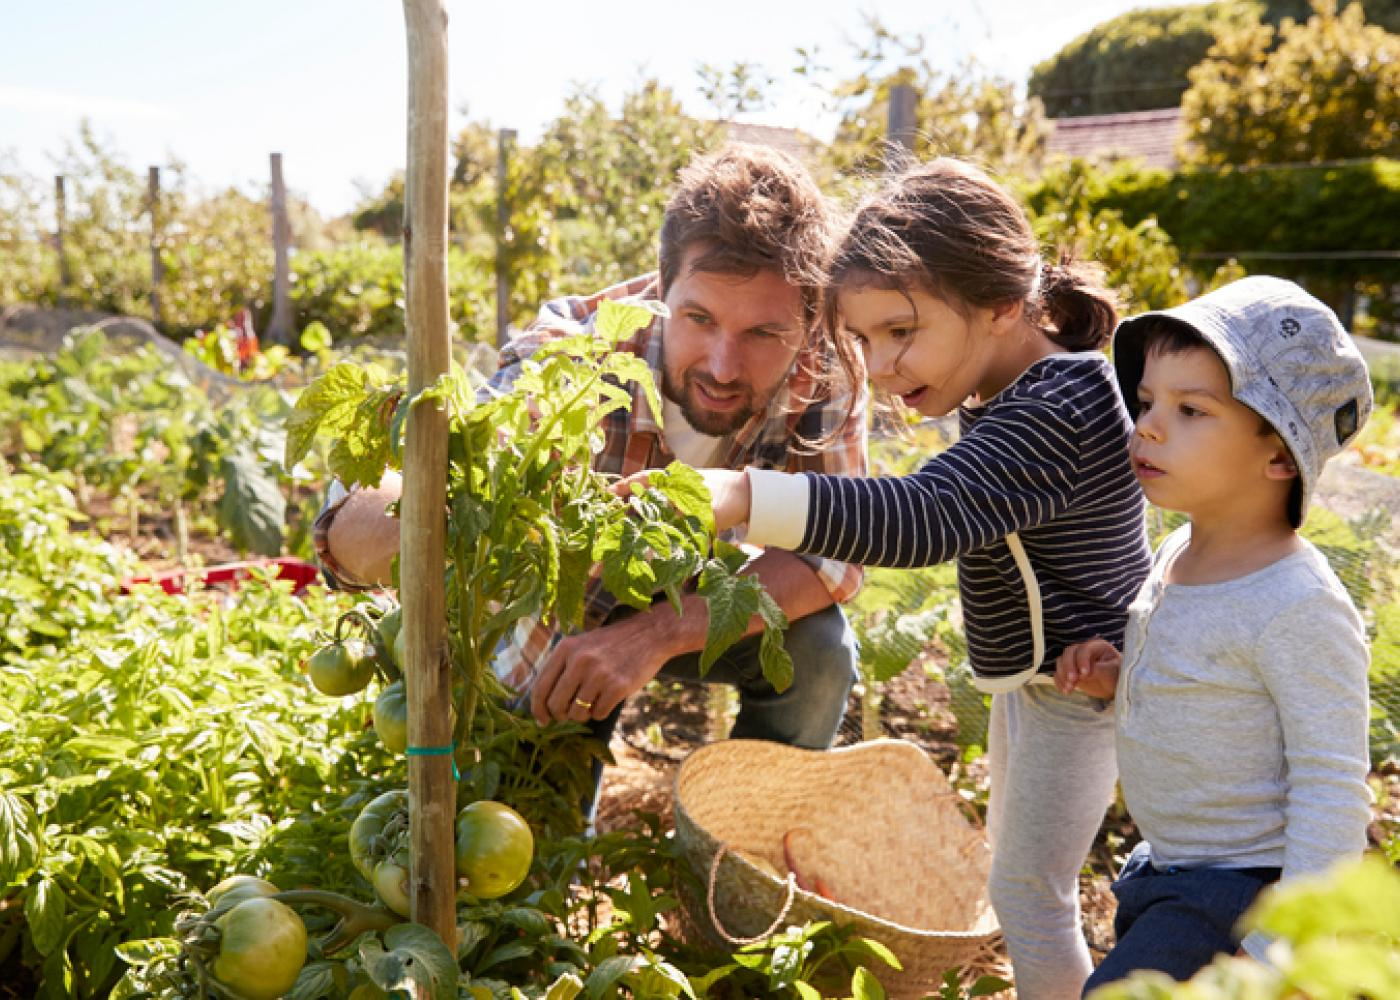 dad, son and daughter pick tomatoes in the sun